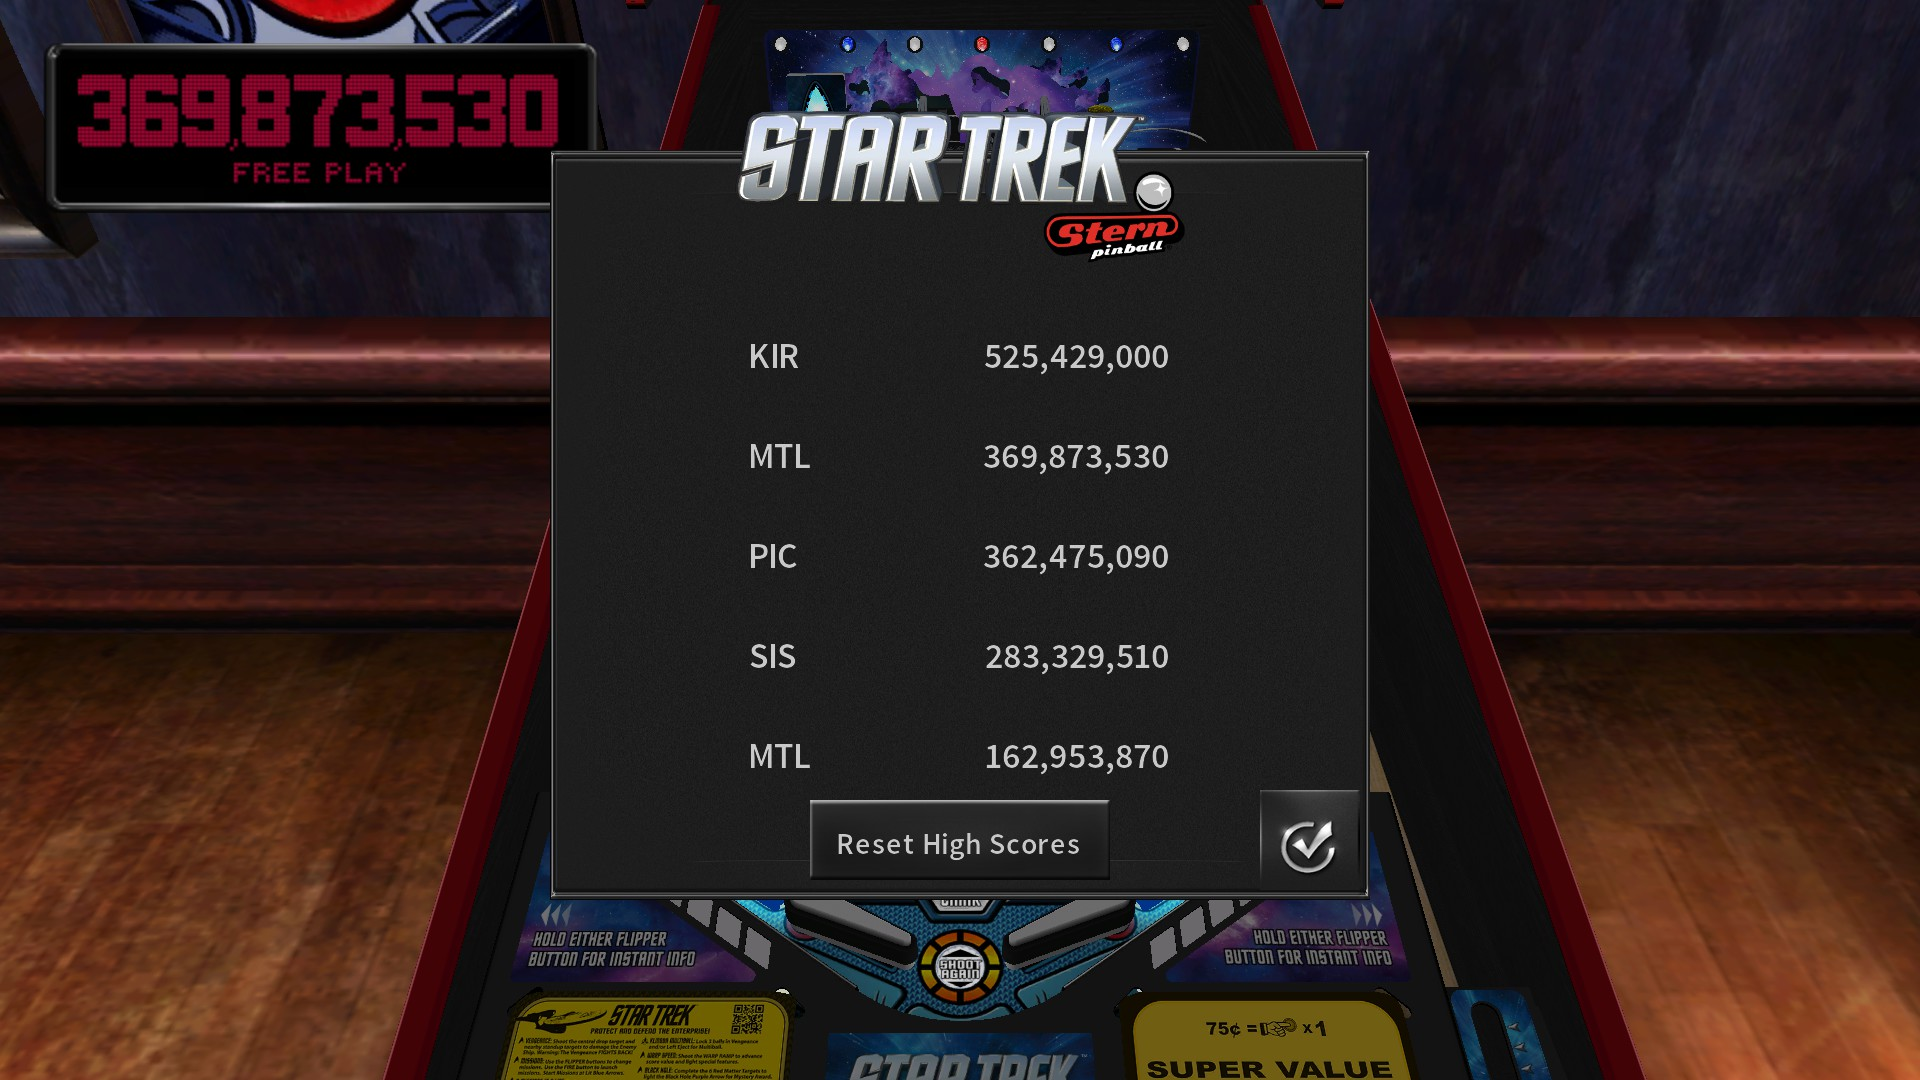 Mantalow: Pinball Arcade: Star Trek: Vengeance Premium (PC) 369,873,530 points on 2018-09-17 01:38:48